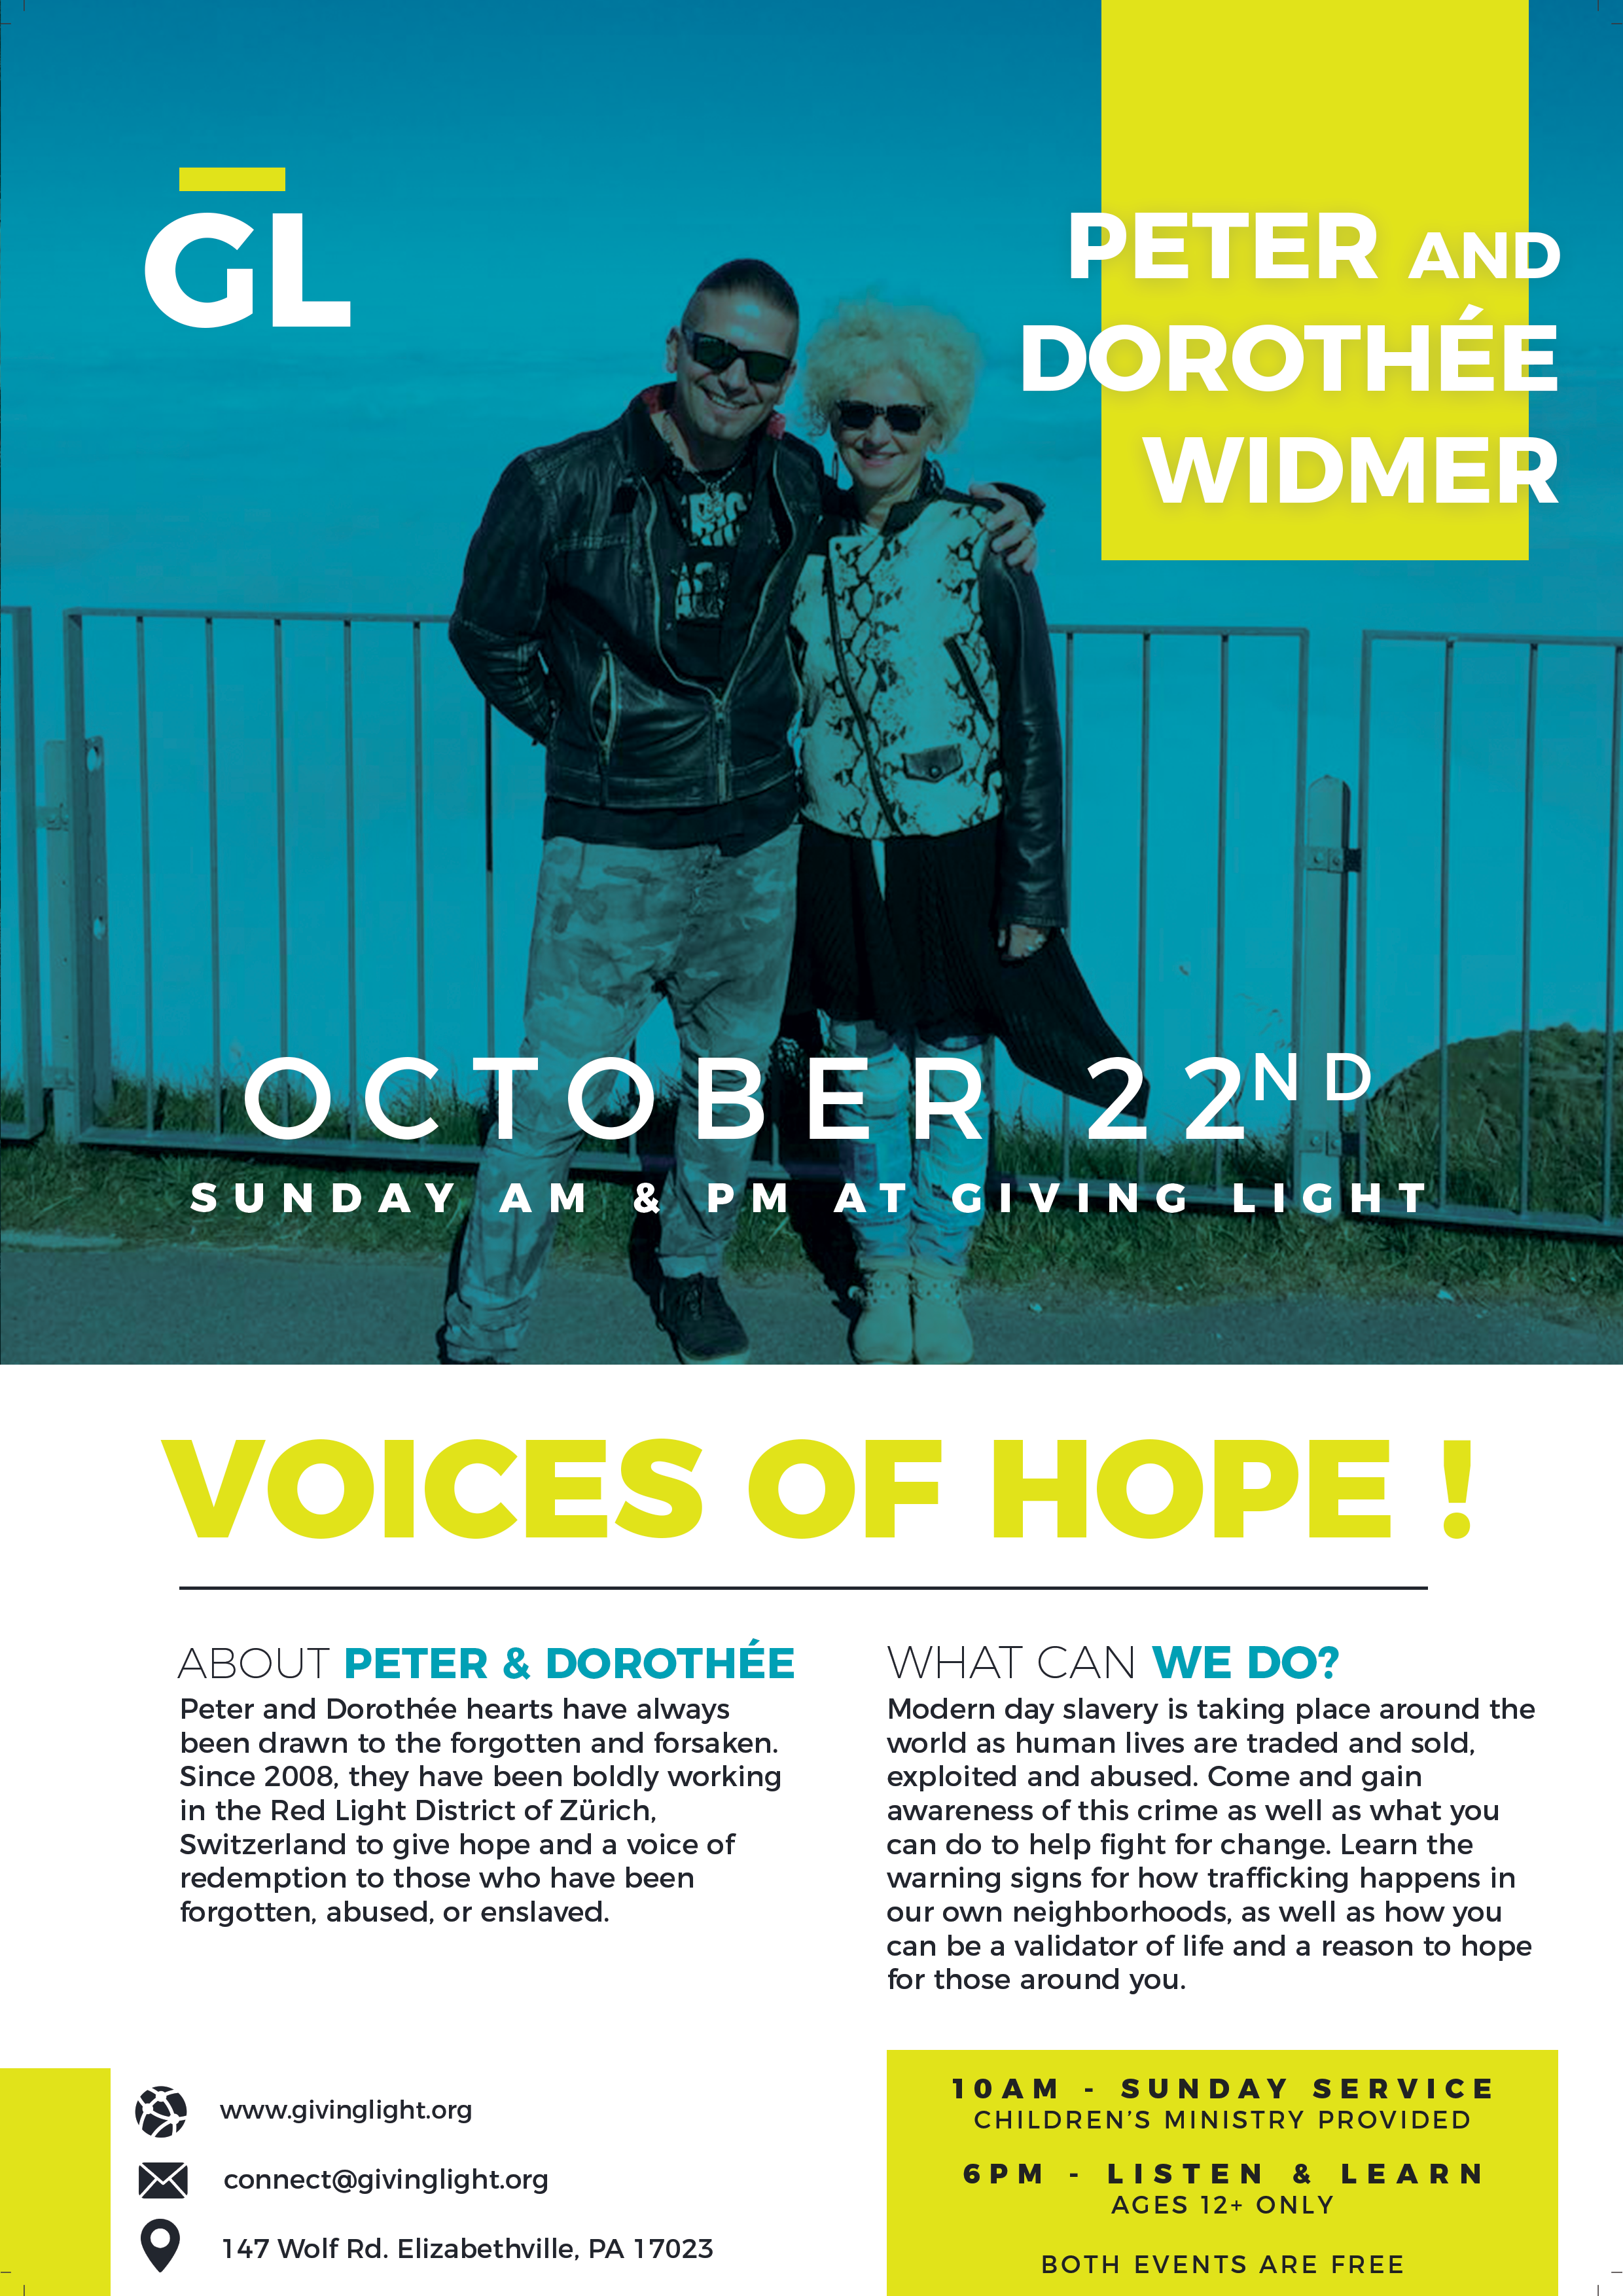 Voices of Hope Poster with Peter and Dorothee Widmir